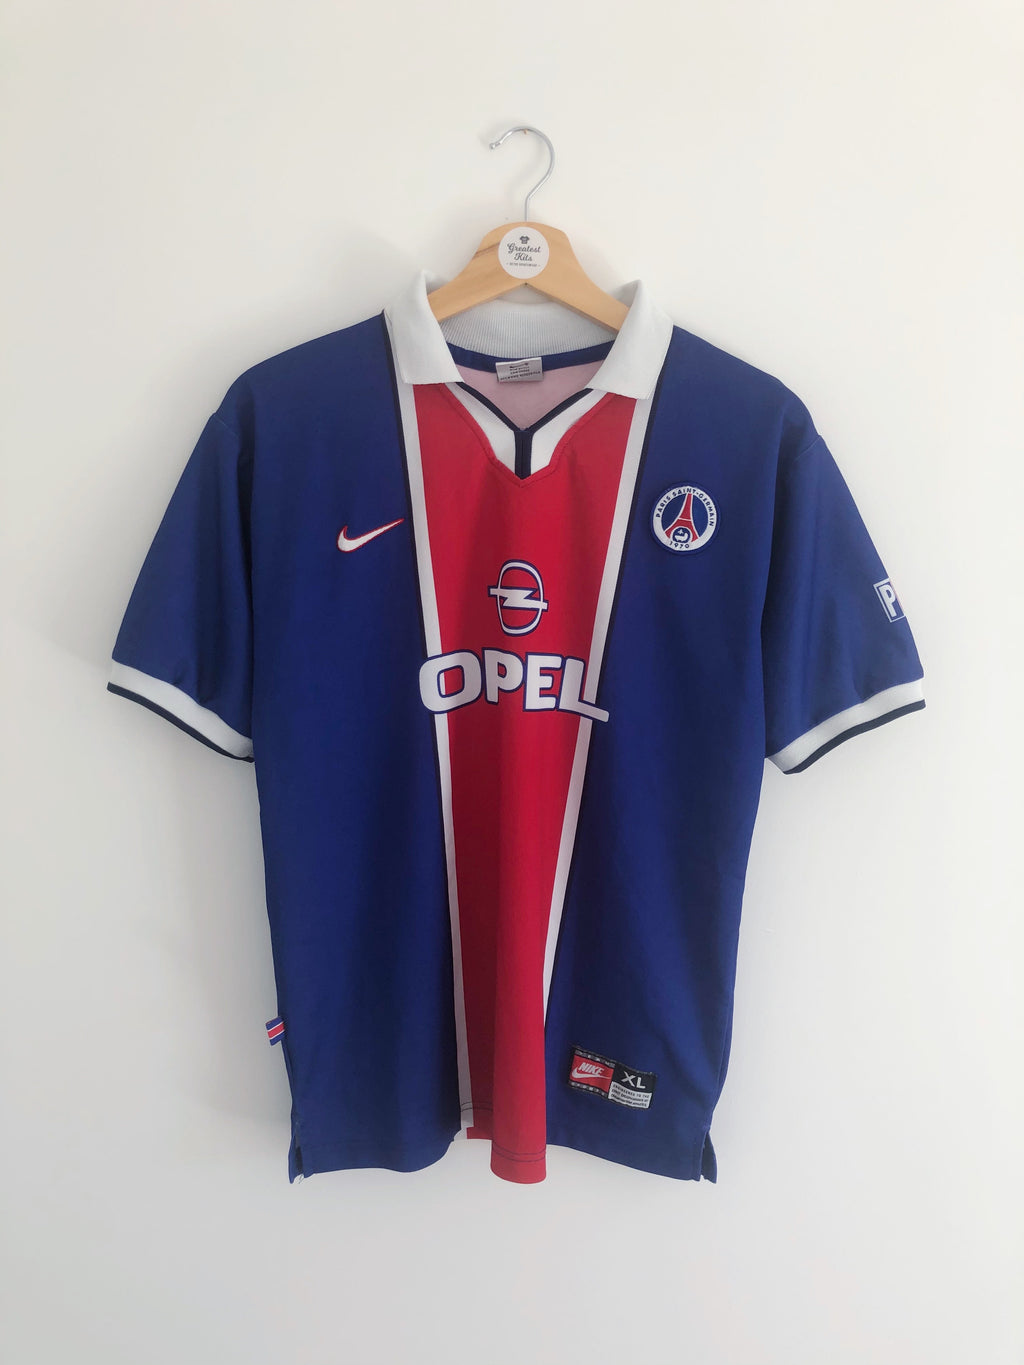 1997/98 Paris Saint-Germain Home Shirt (XL.Boys) 9/10